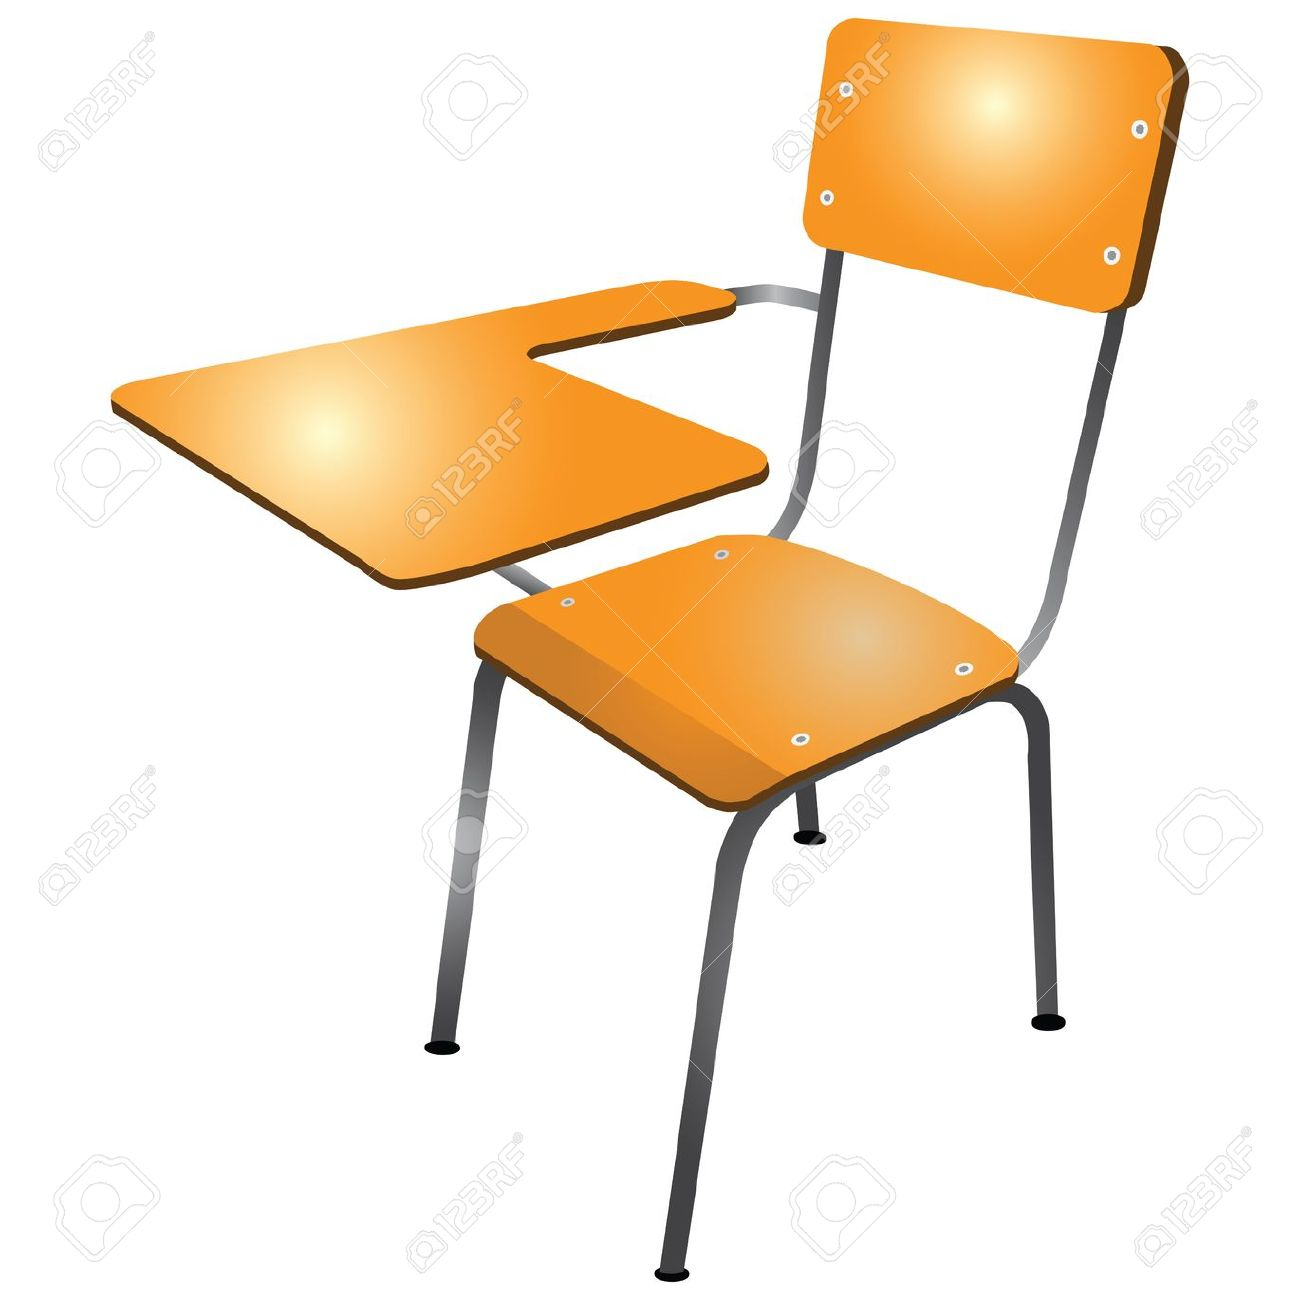 Furniture clipart school table Student  #3962 of Chair